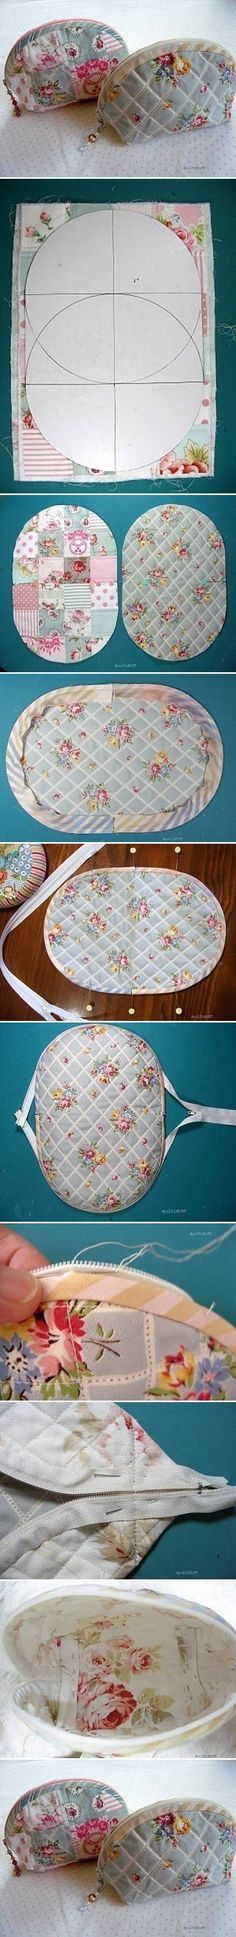 DIY Sew Makeup Bag... I'm thinking this is a great pattern idea for placemats.